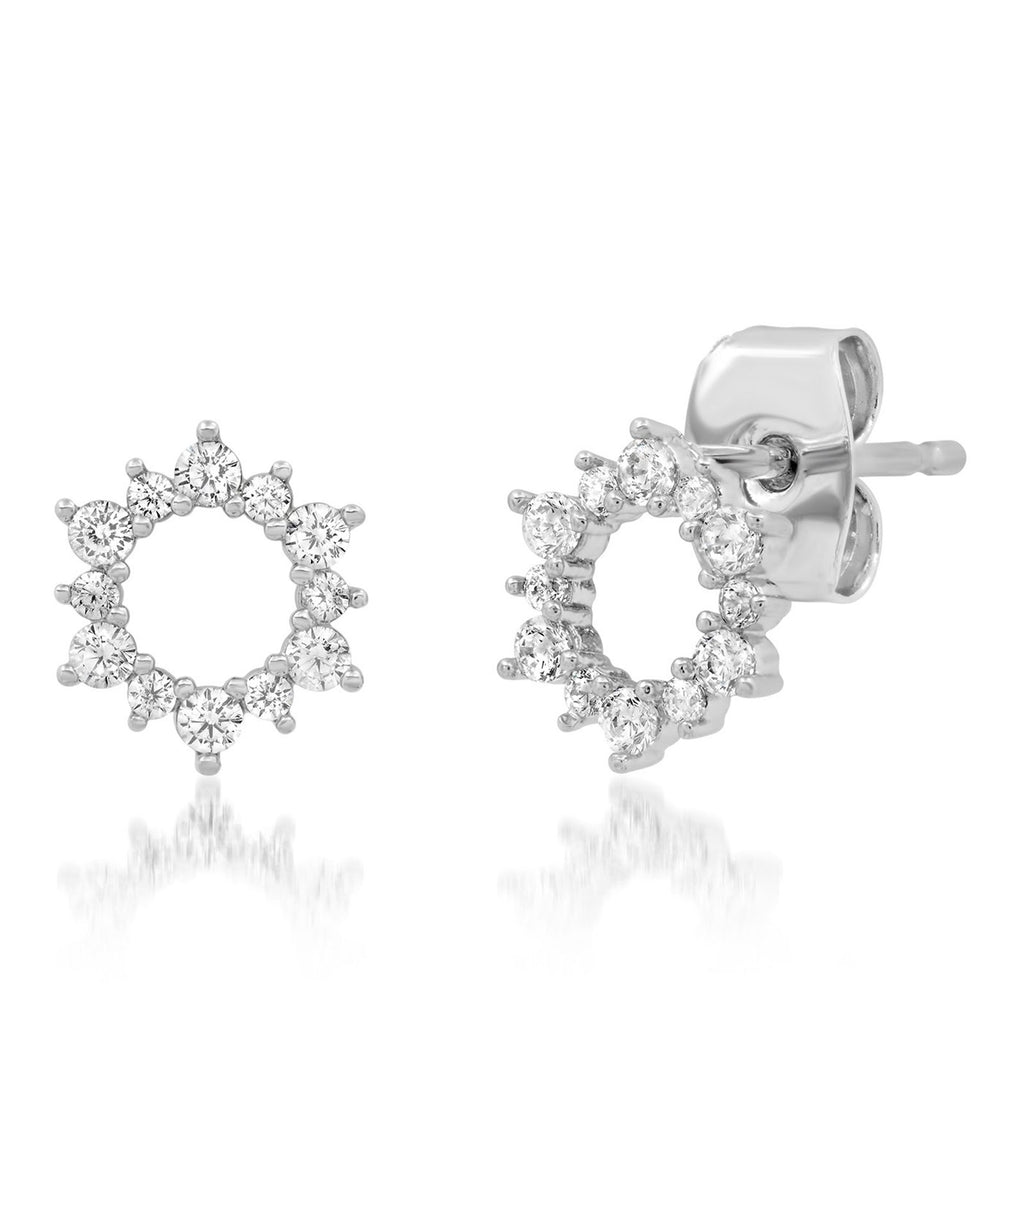 TAI Silver Pave Flower Stud Earrings